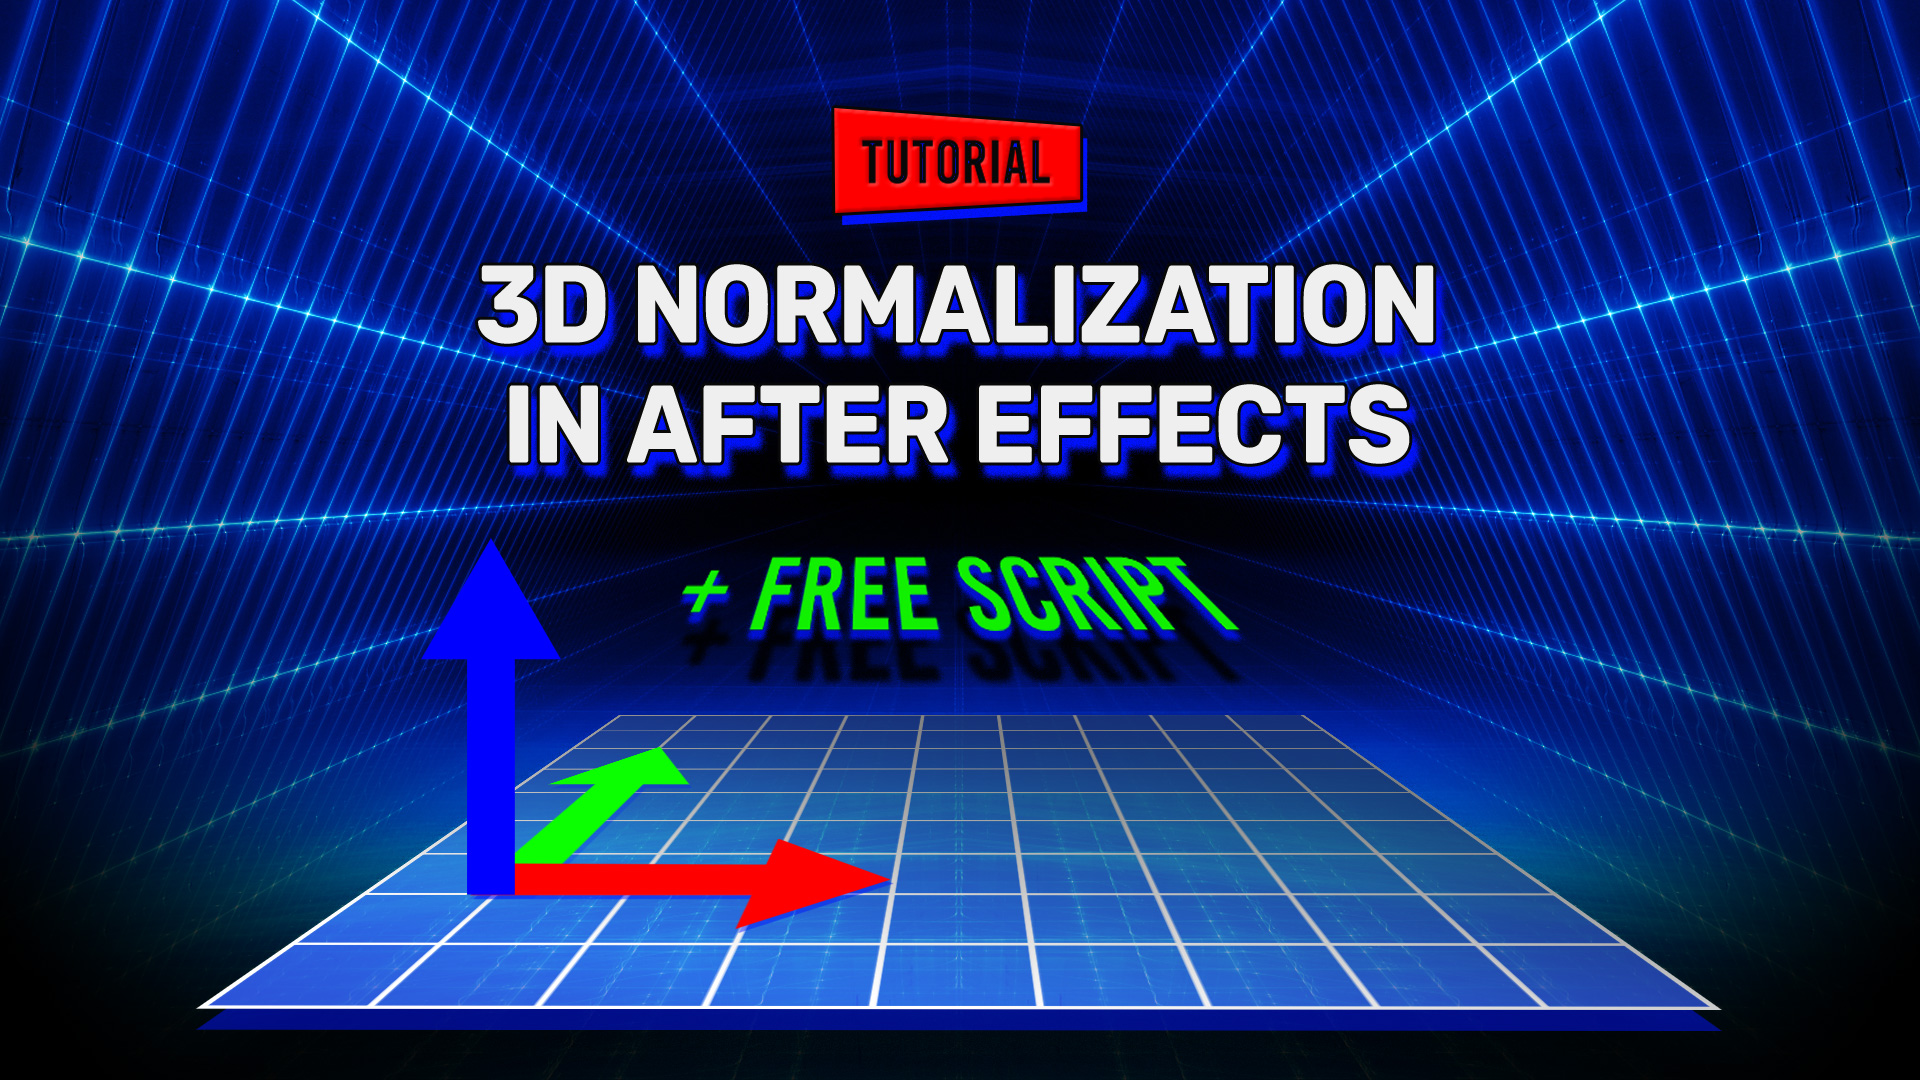 3D Normalization in After Effects + Free Script!